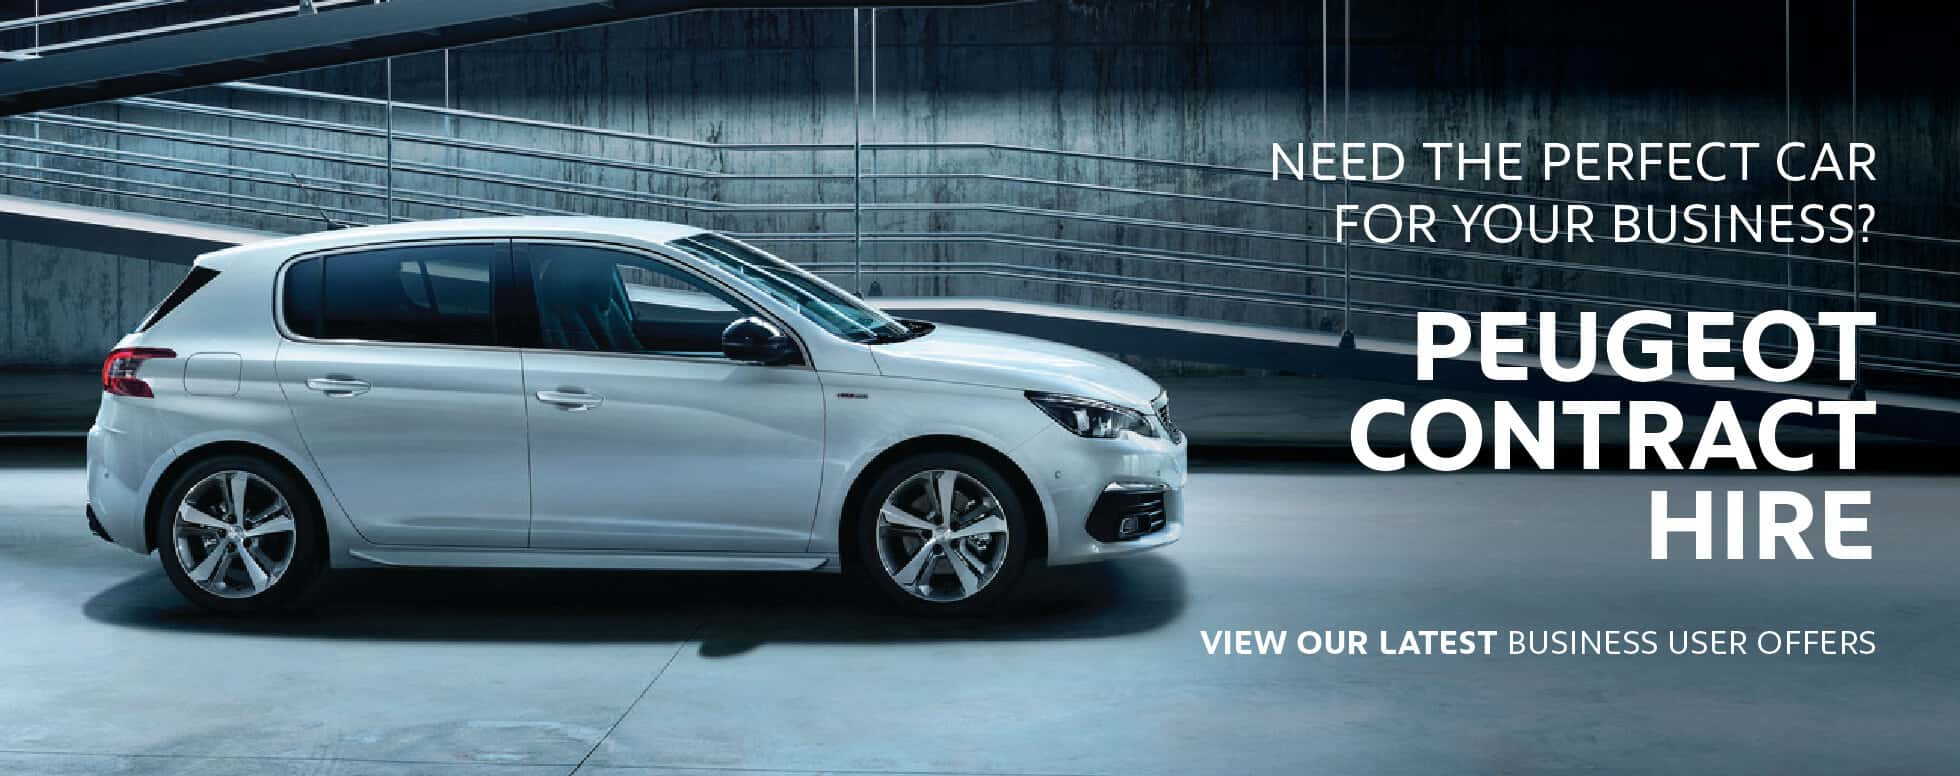 Peugeot Contract Hire BB